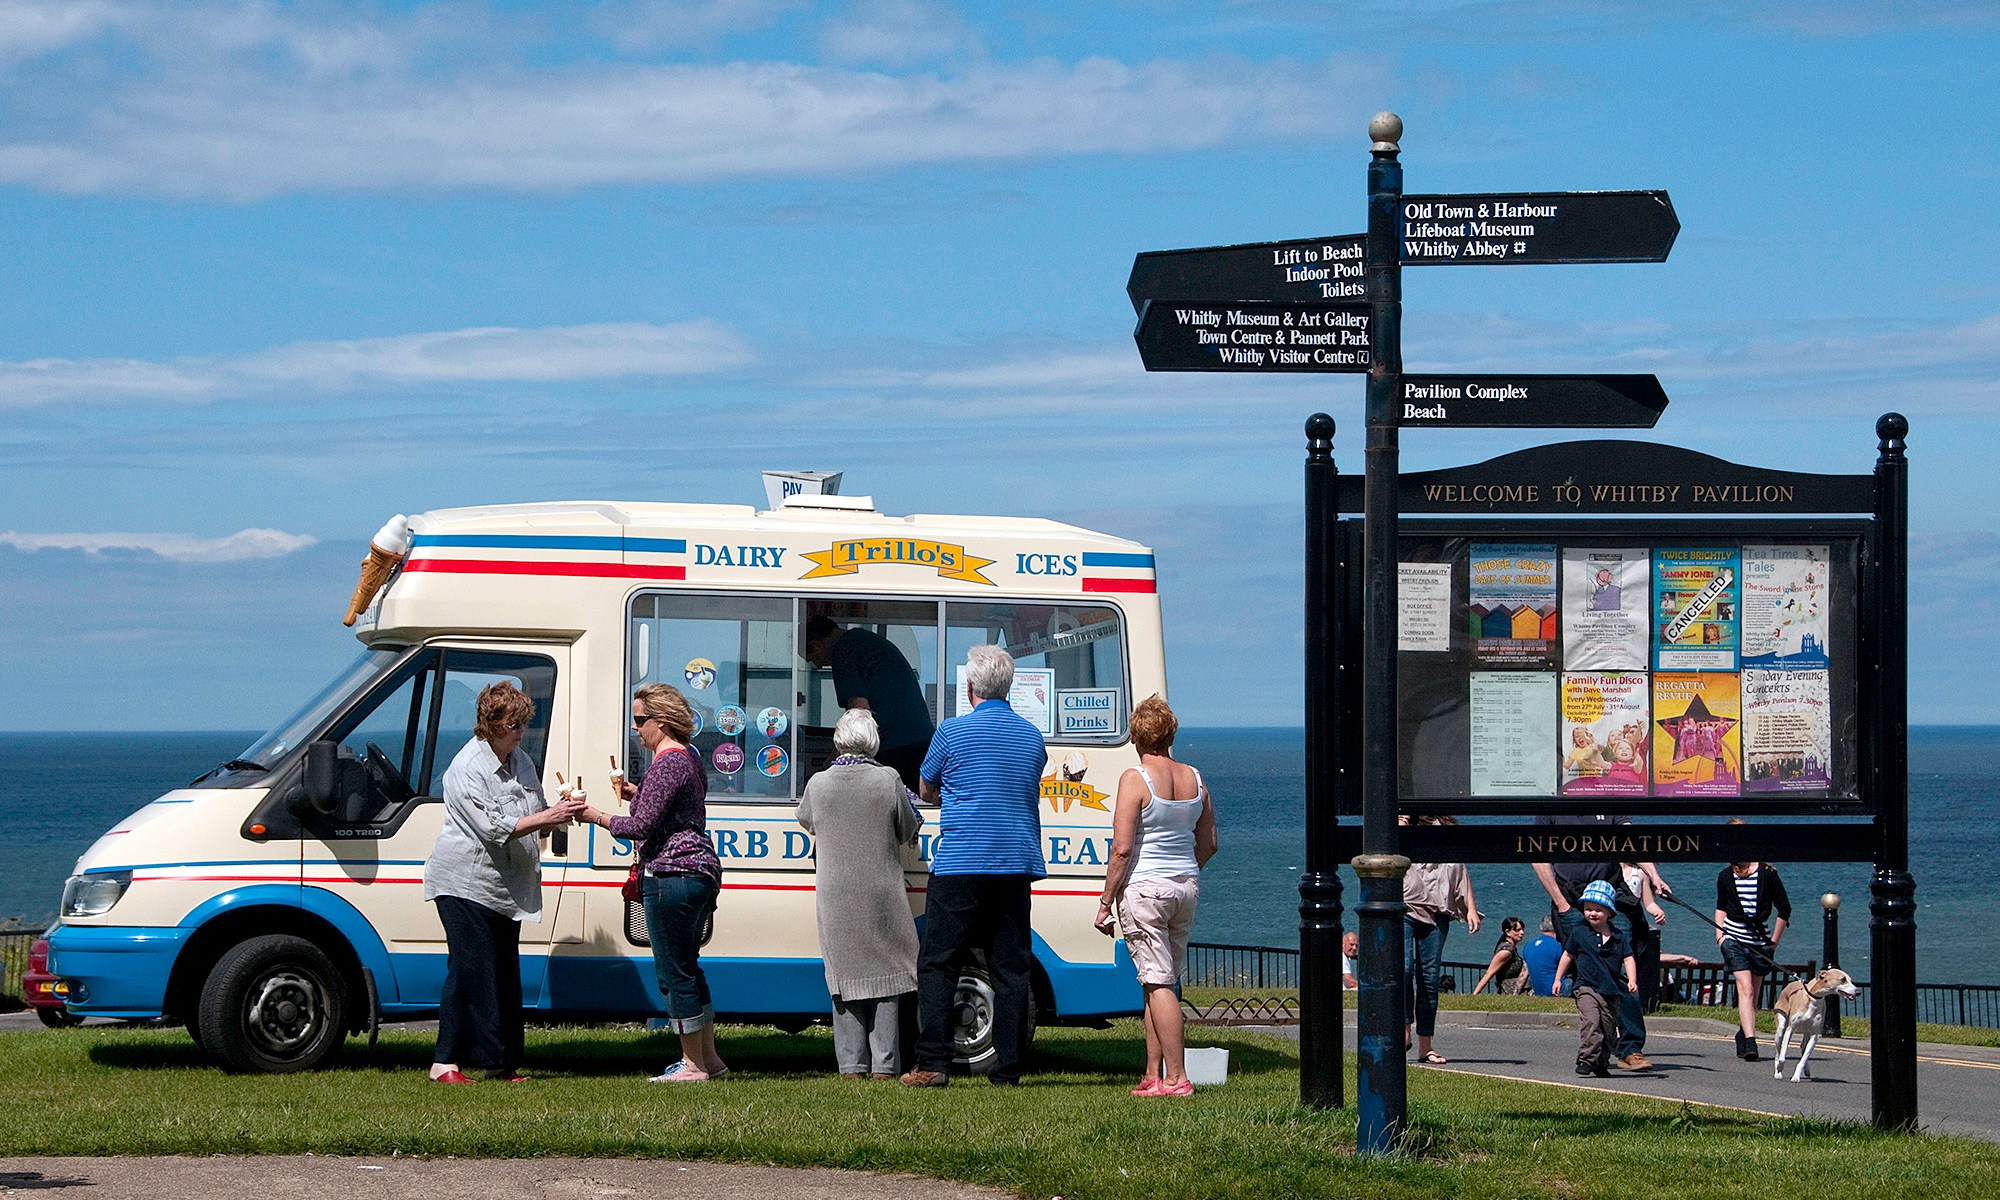 Ice Cream Van at the Seaside